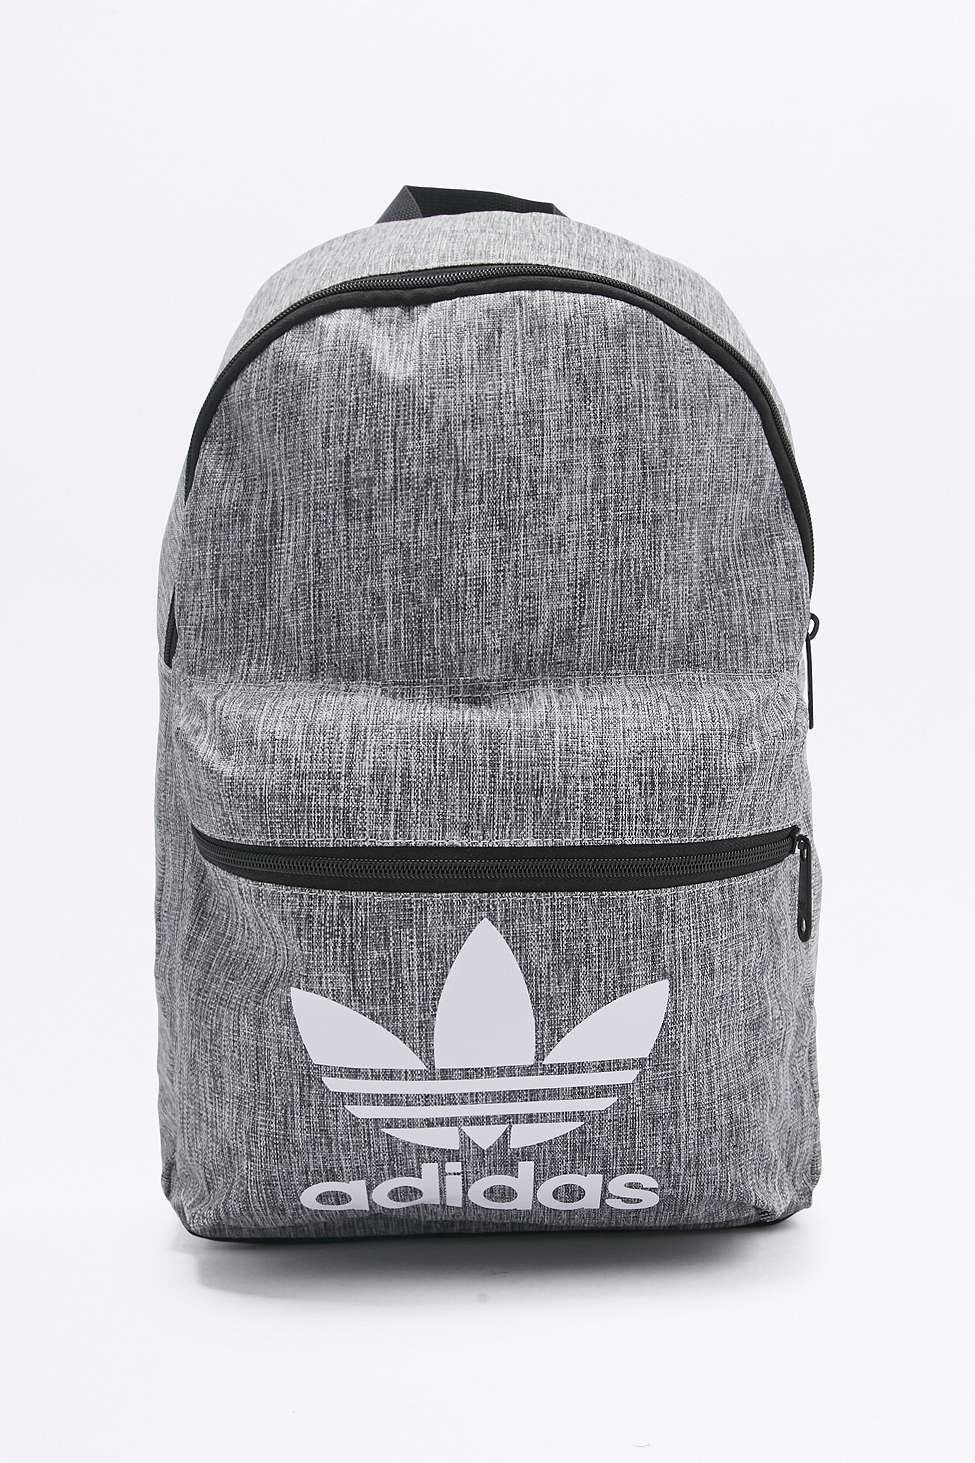 f246a01616a8 adidas Originals Grey Melange Backpack in 2019